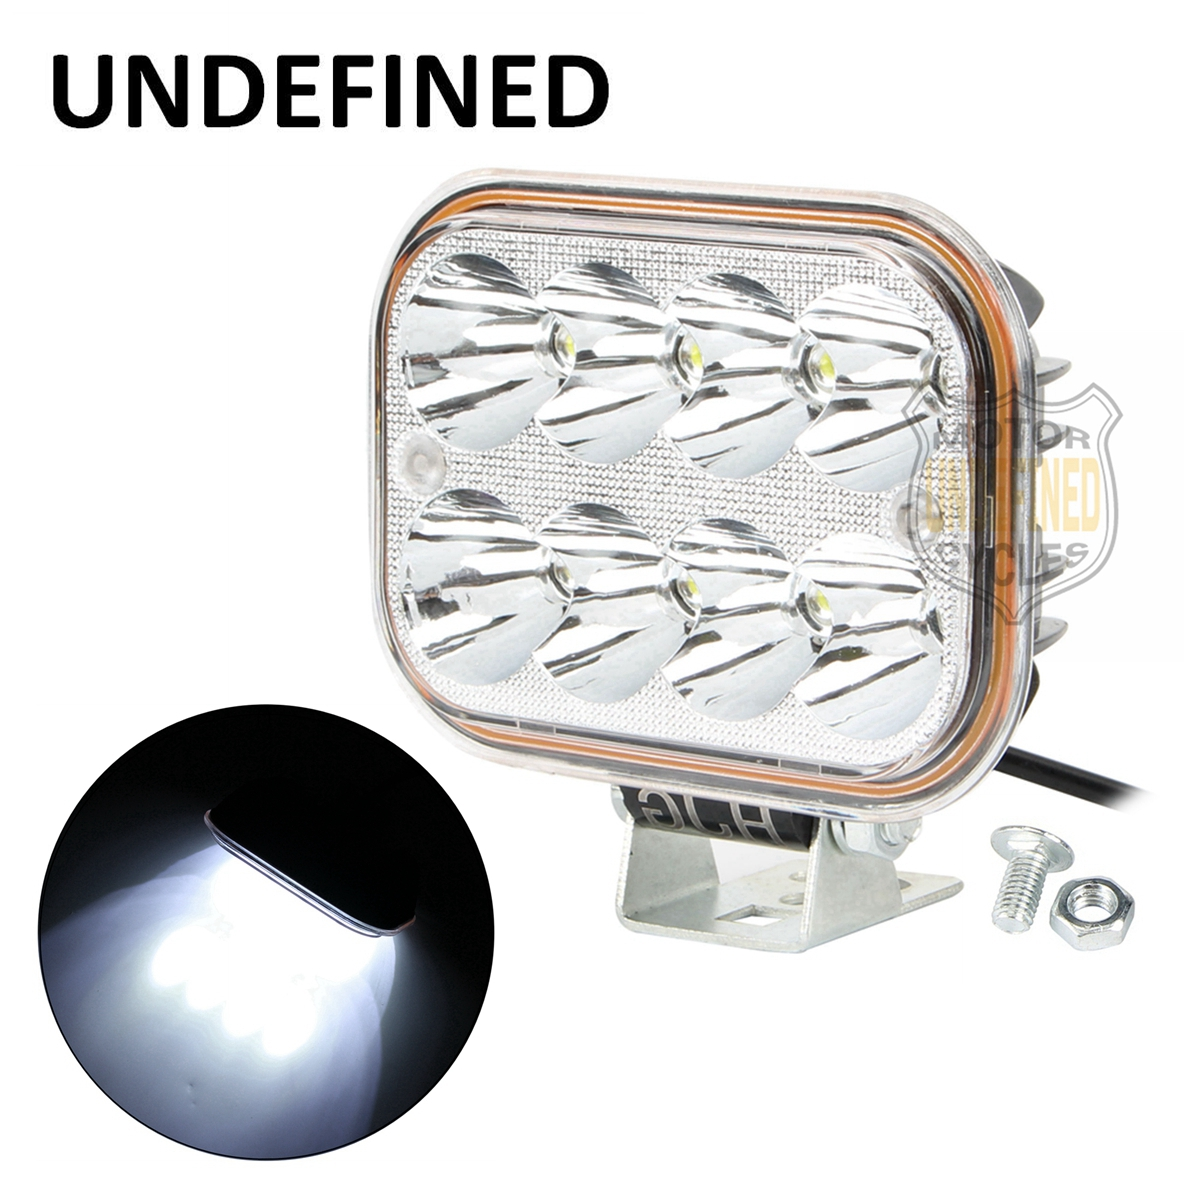 Motorbike Parts Easy To Install 24W 8 LED <font><b>12</b></font>-<font><b>80V</b></font> Driving Work Spot Head Front Spotlight <font><b>Light</b></font> High Low Beam UNDEFINED image